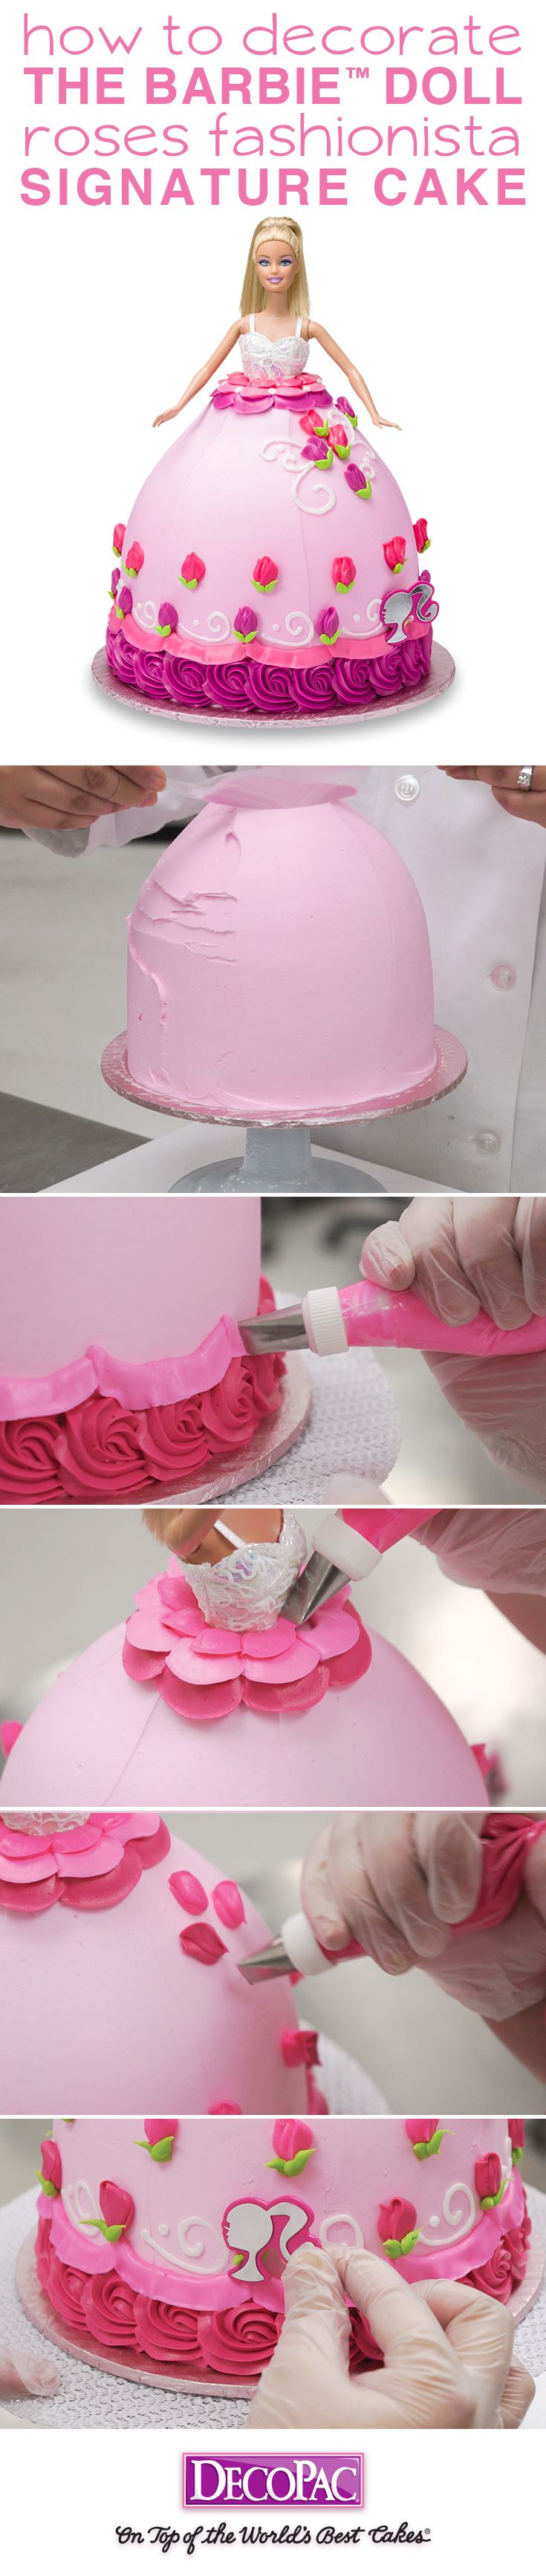 Barbie never goes out of style, learn to make this Signature Barbie Doll Roses Fashionista cake.